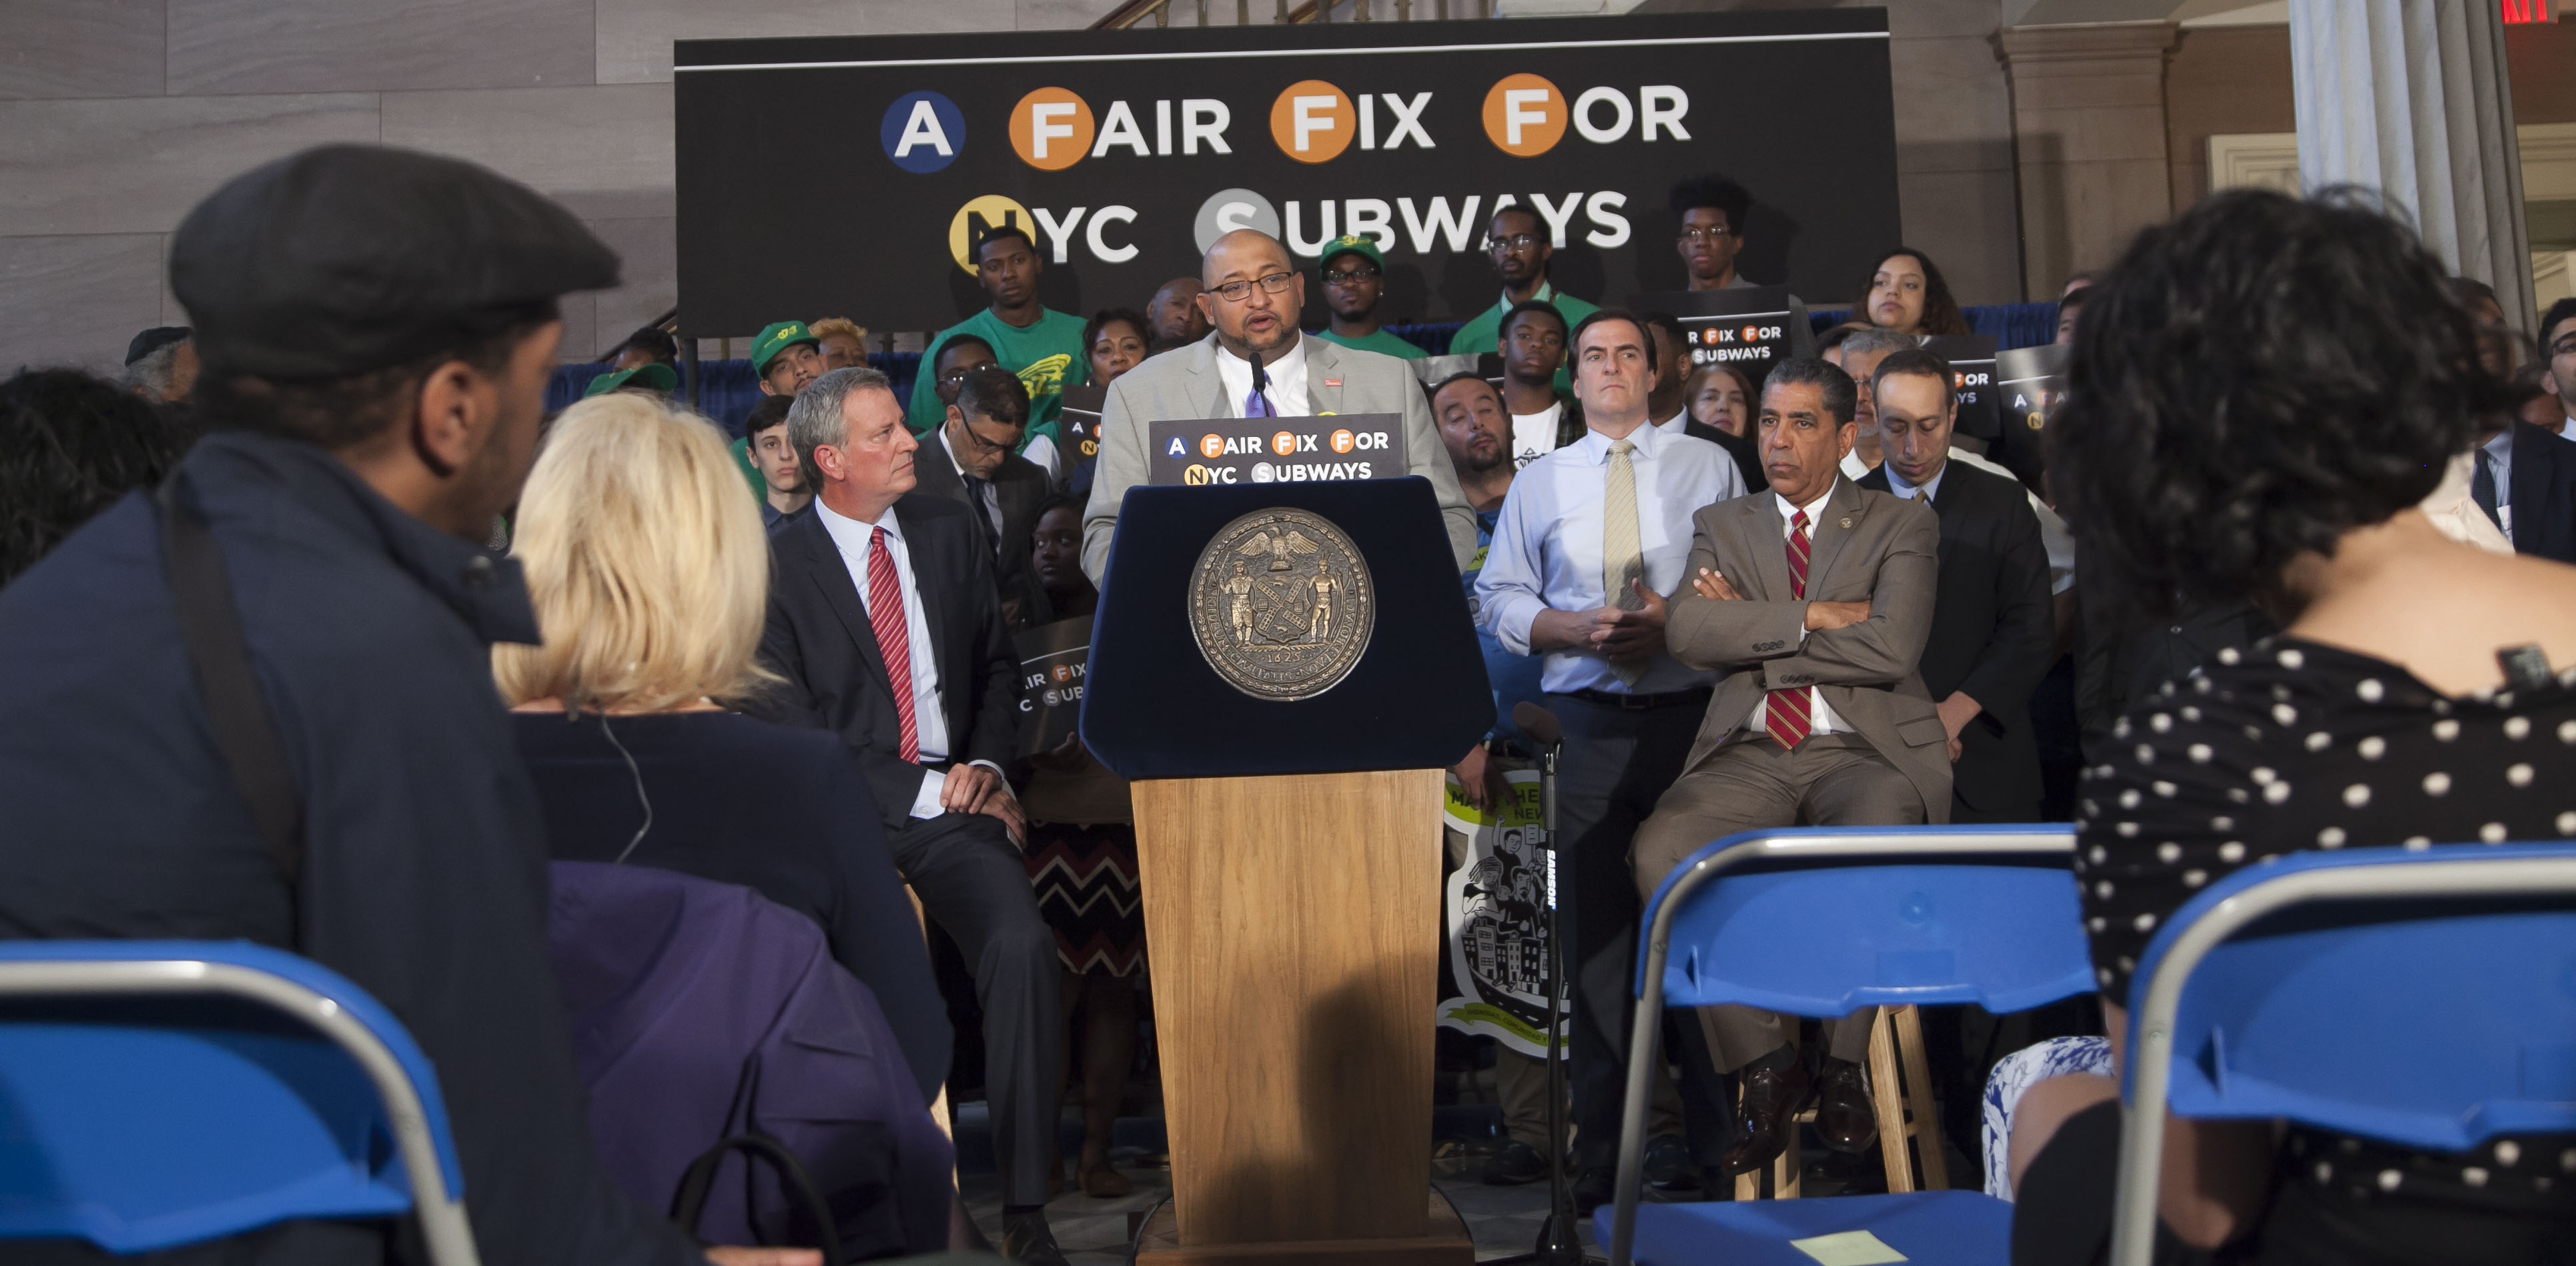 Union Backs Mayor de Blasio's Plan to Tax the Wealthy to Fix the City's Troubled Subway System